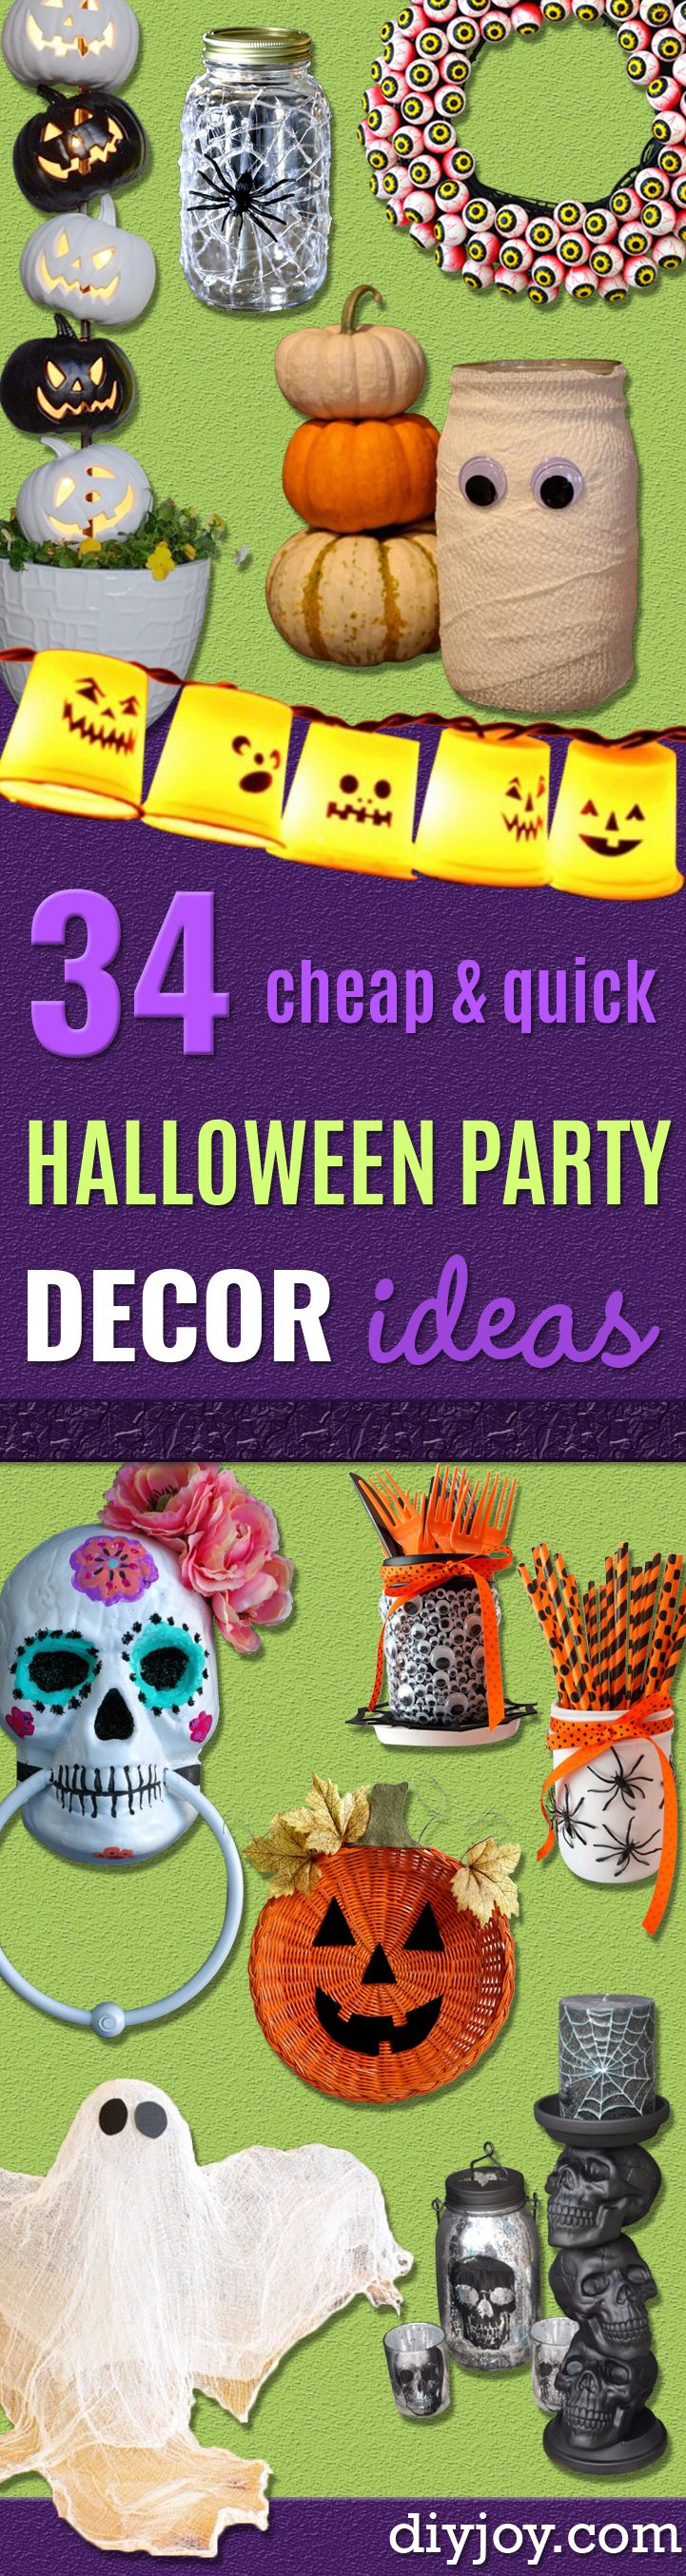 DIY Halloween Decorations - Best Easy, Cheap and Quick Halloween Decor Ideas and Crafts for Inside and Outside Your Home - Scary, Creepy Cute and Fun Outdoor Project Tutorials #halloween #diyhalloween #halloweendecor